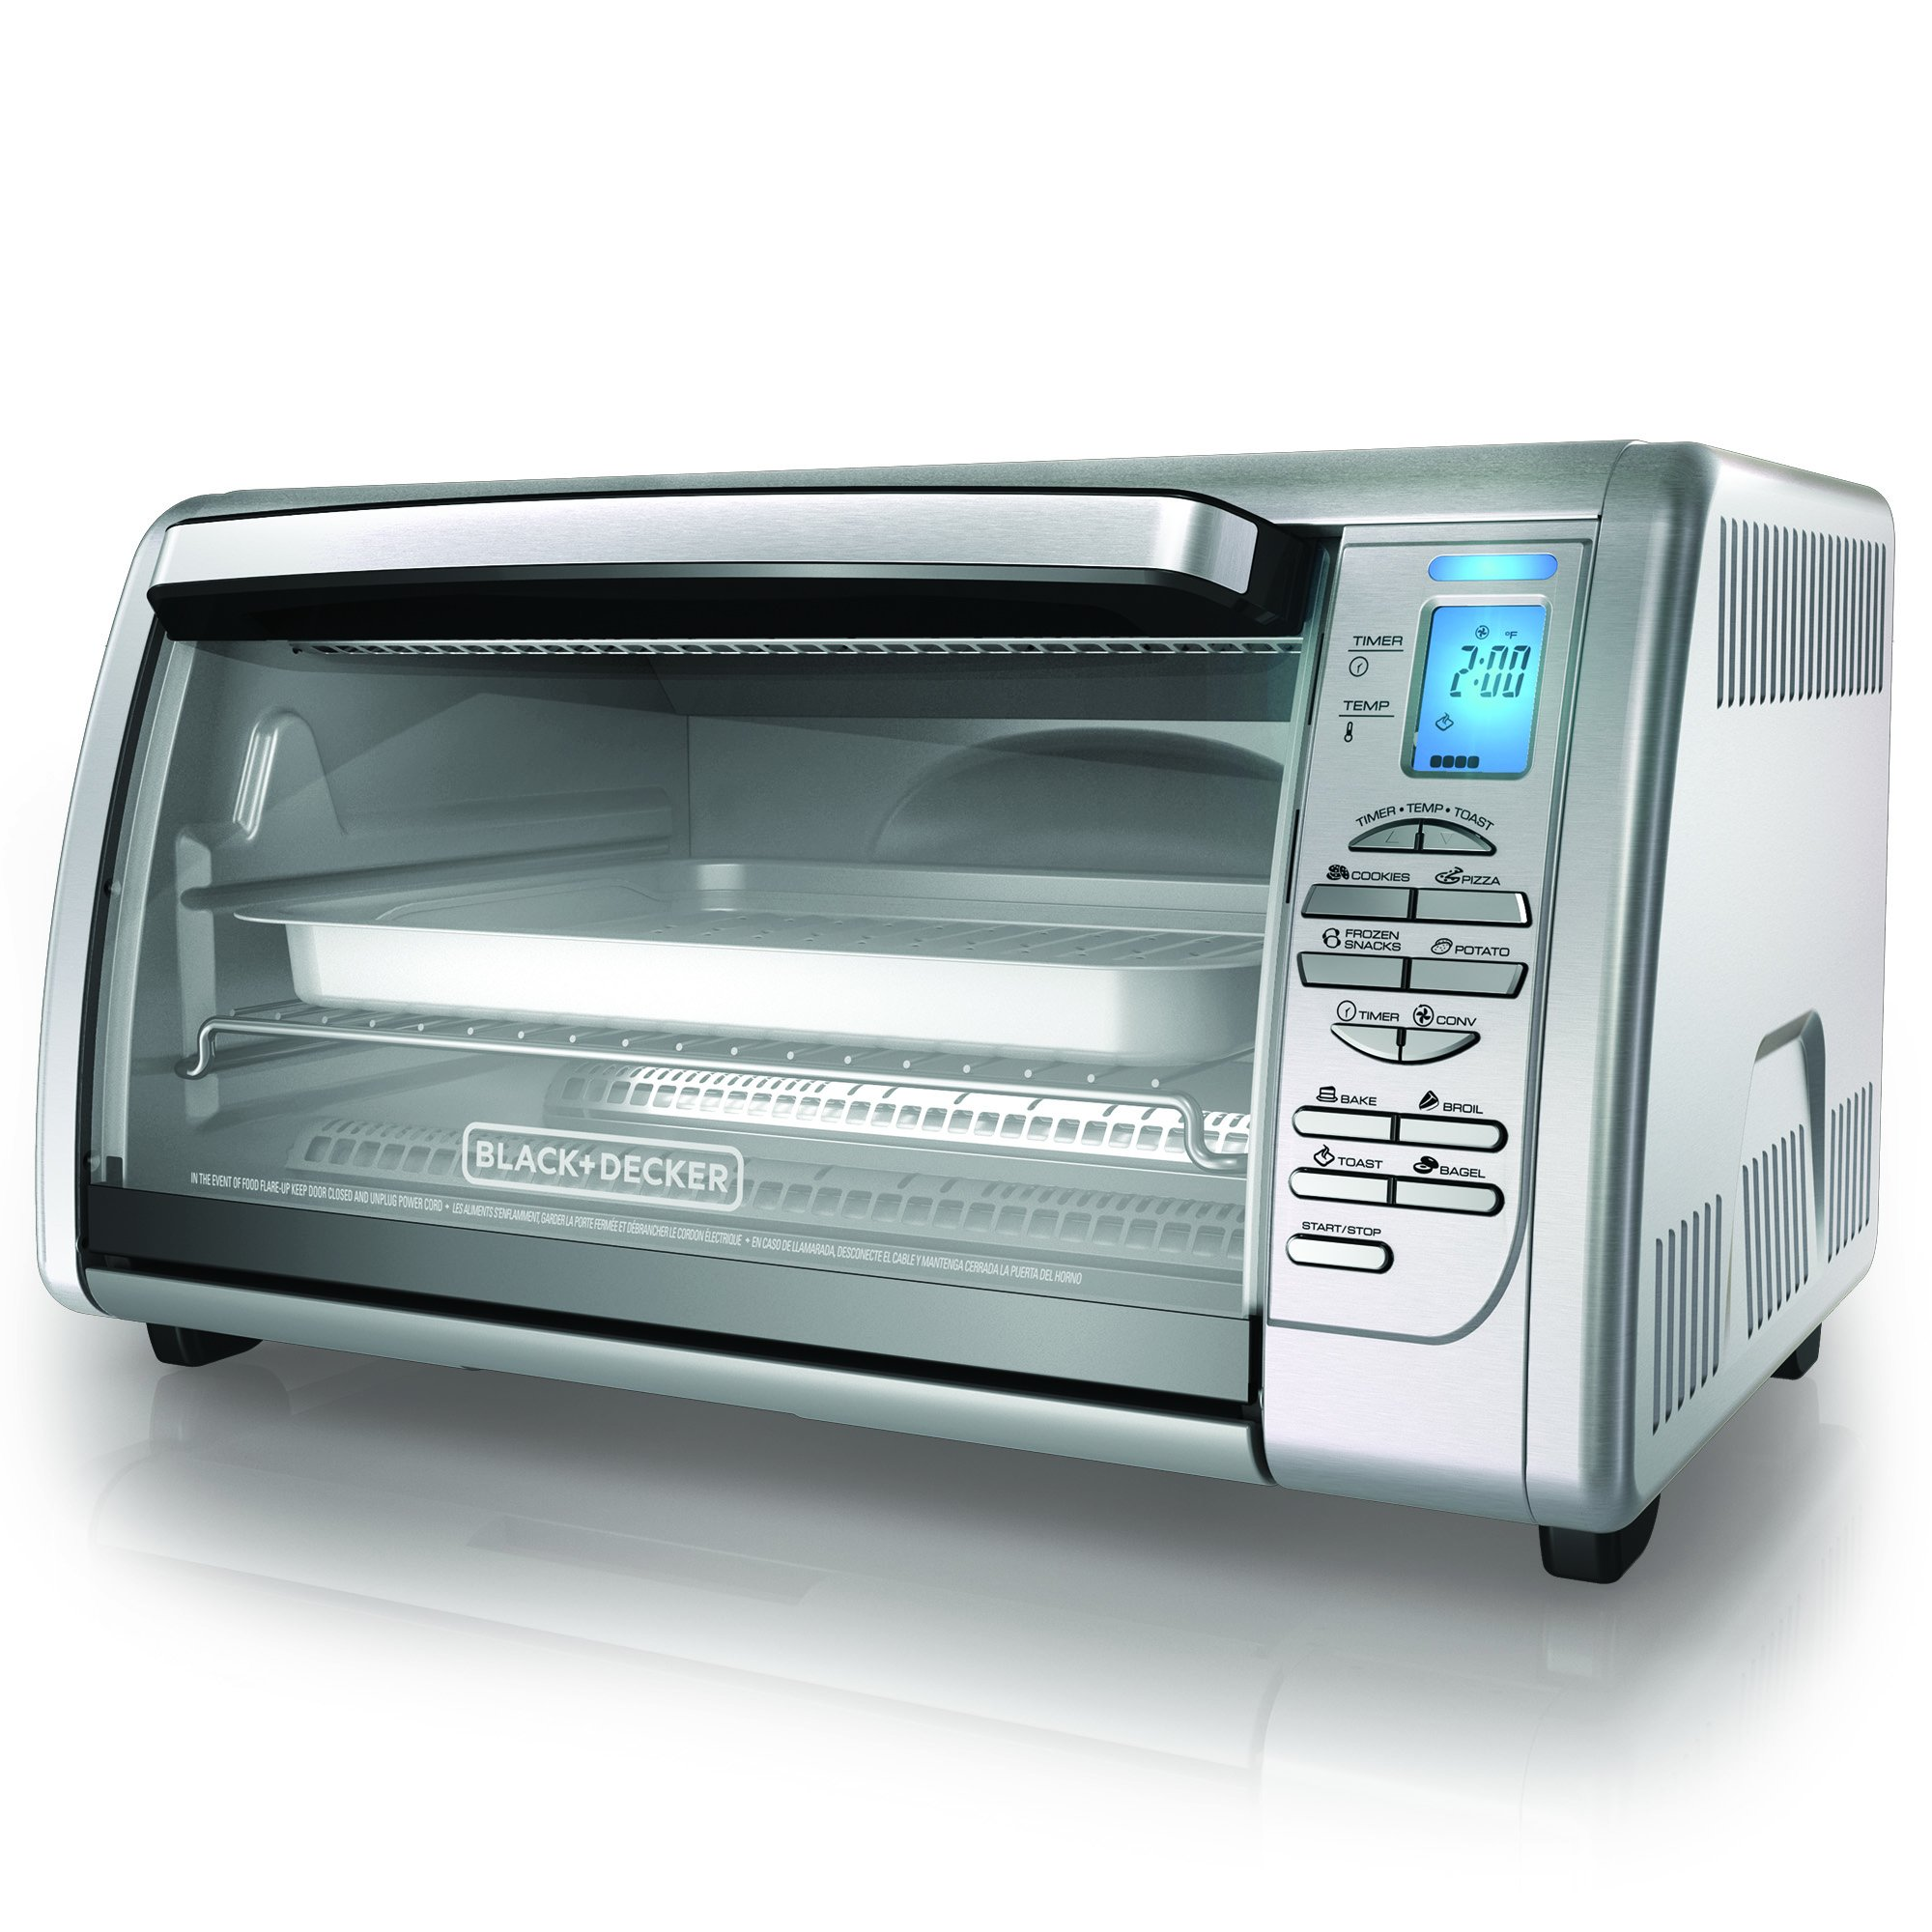 Convection Countertop Oven Stainless Steel : ... +DECKER CTO6335S Stainless Steel Countertop Convection Oven, Silver